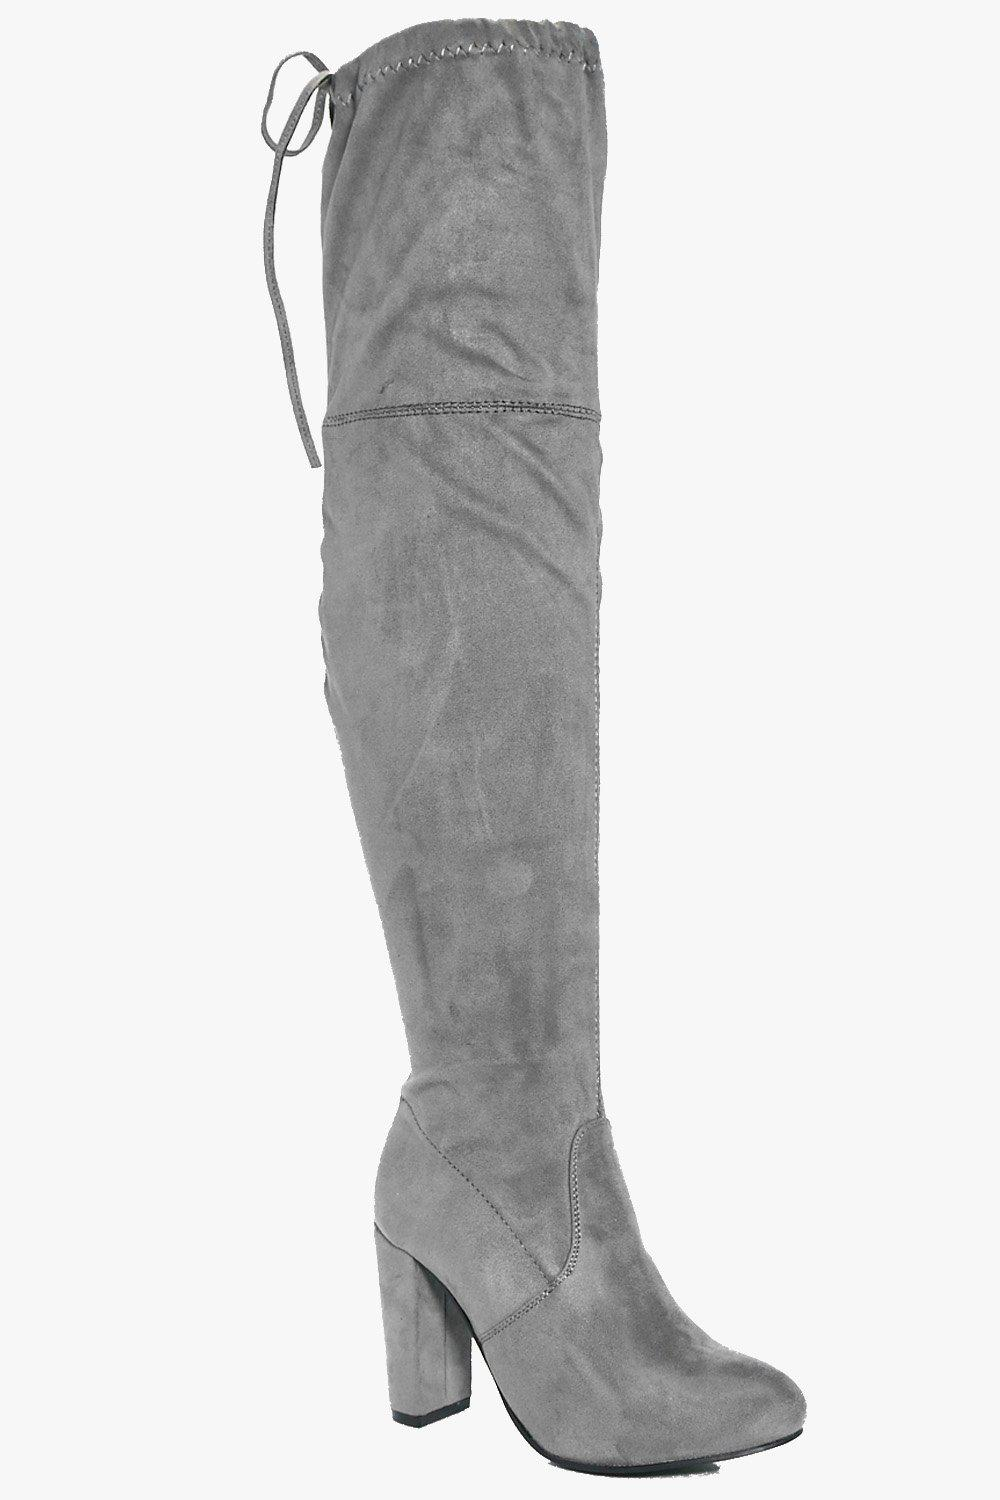 98decfd944e Block Heel Lace Up Back Thigh High Boots. Hover to zoom